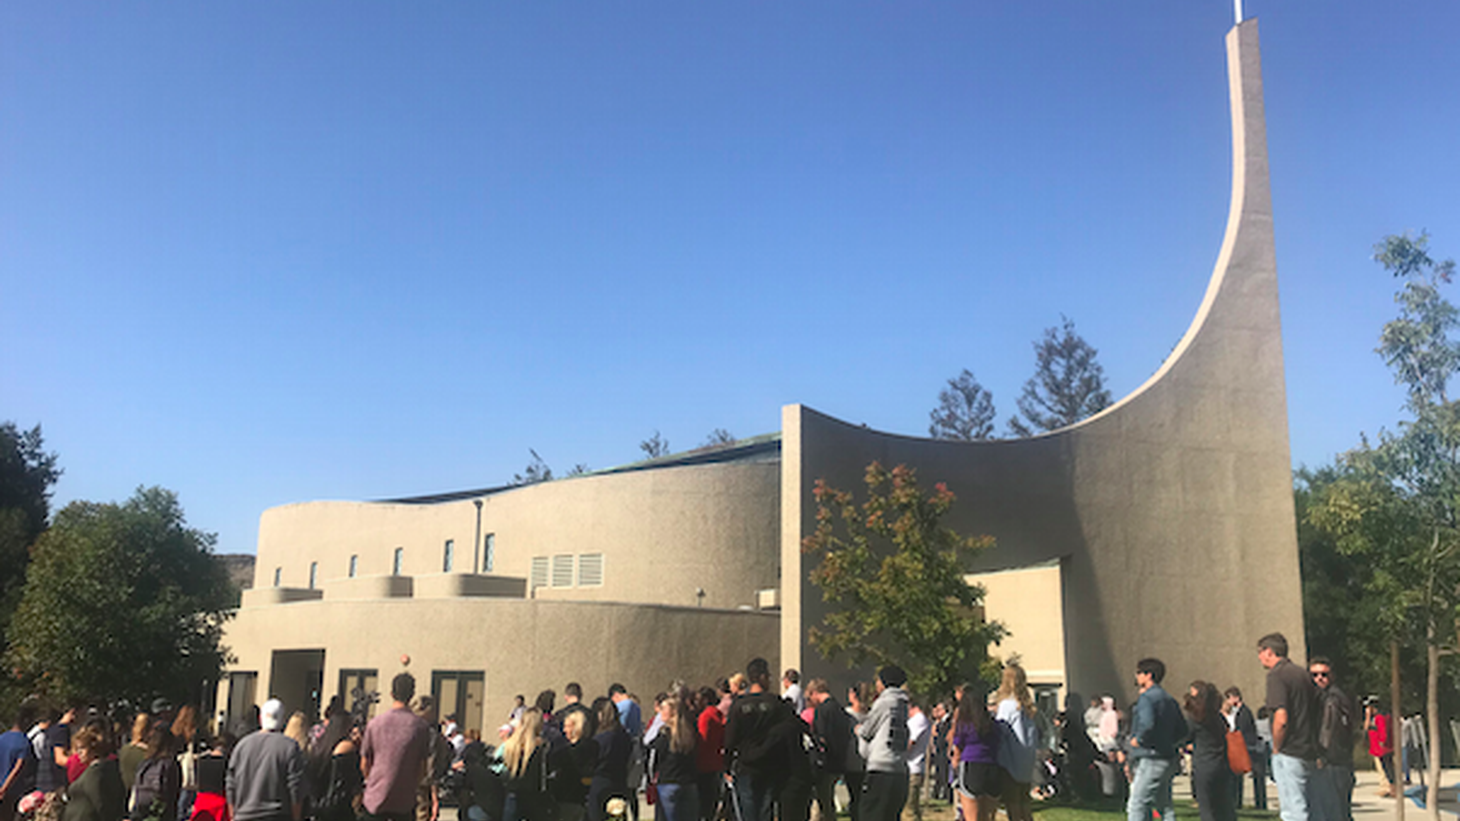 A mass shooting Wednesday night in Thousand Oaks left 12 people dead, most of them young. We get the latest, and find out why California's strict gun laws couldn't prevent this from happening.